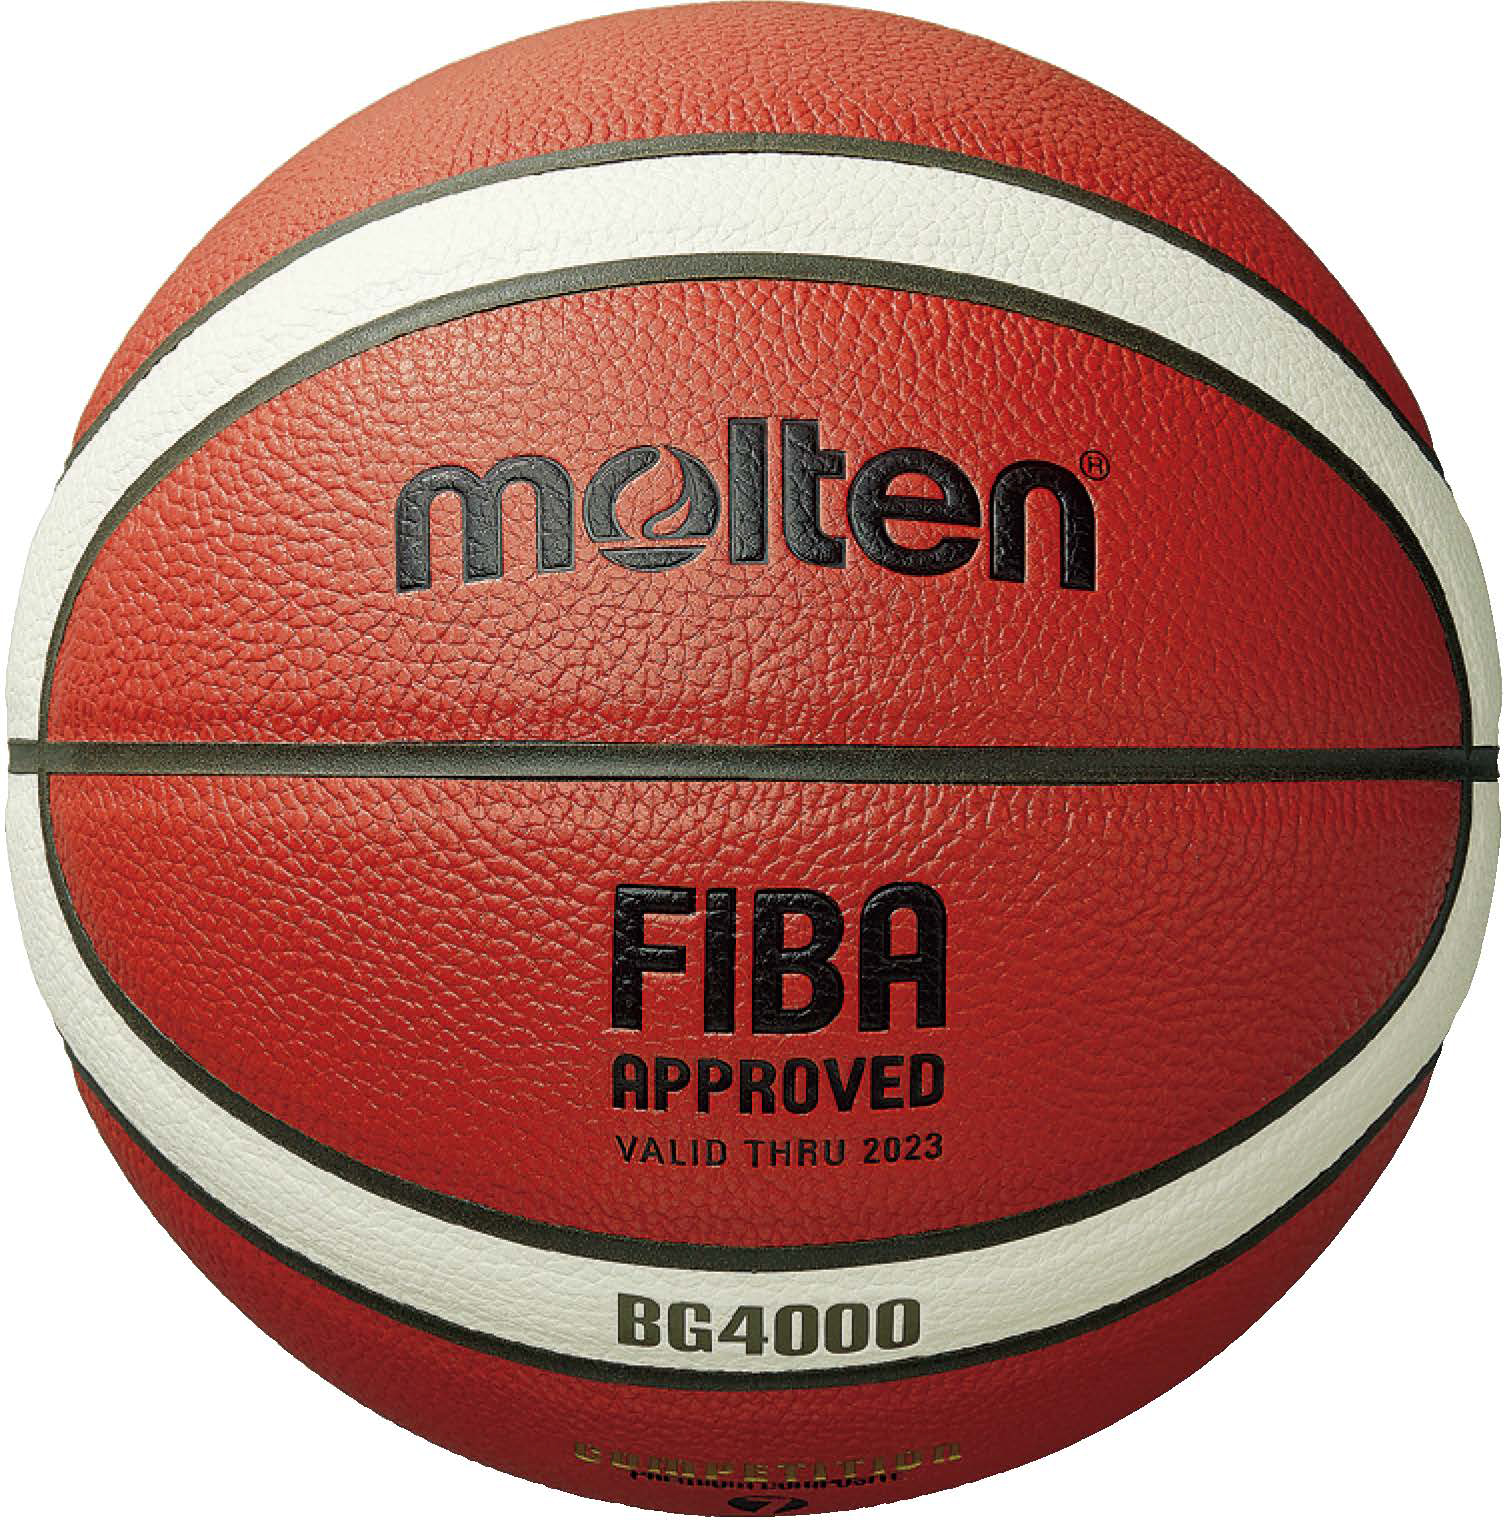 Introducing the new Molten range BG4000 BG4500 BG5000 - Formerly known as the GFX, GGX and GLX range